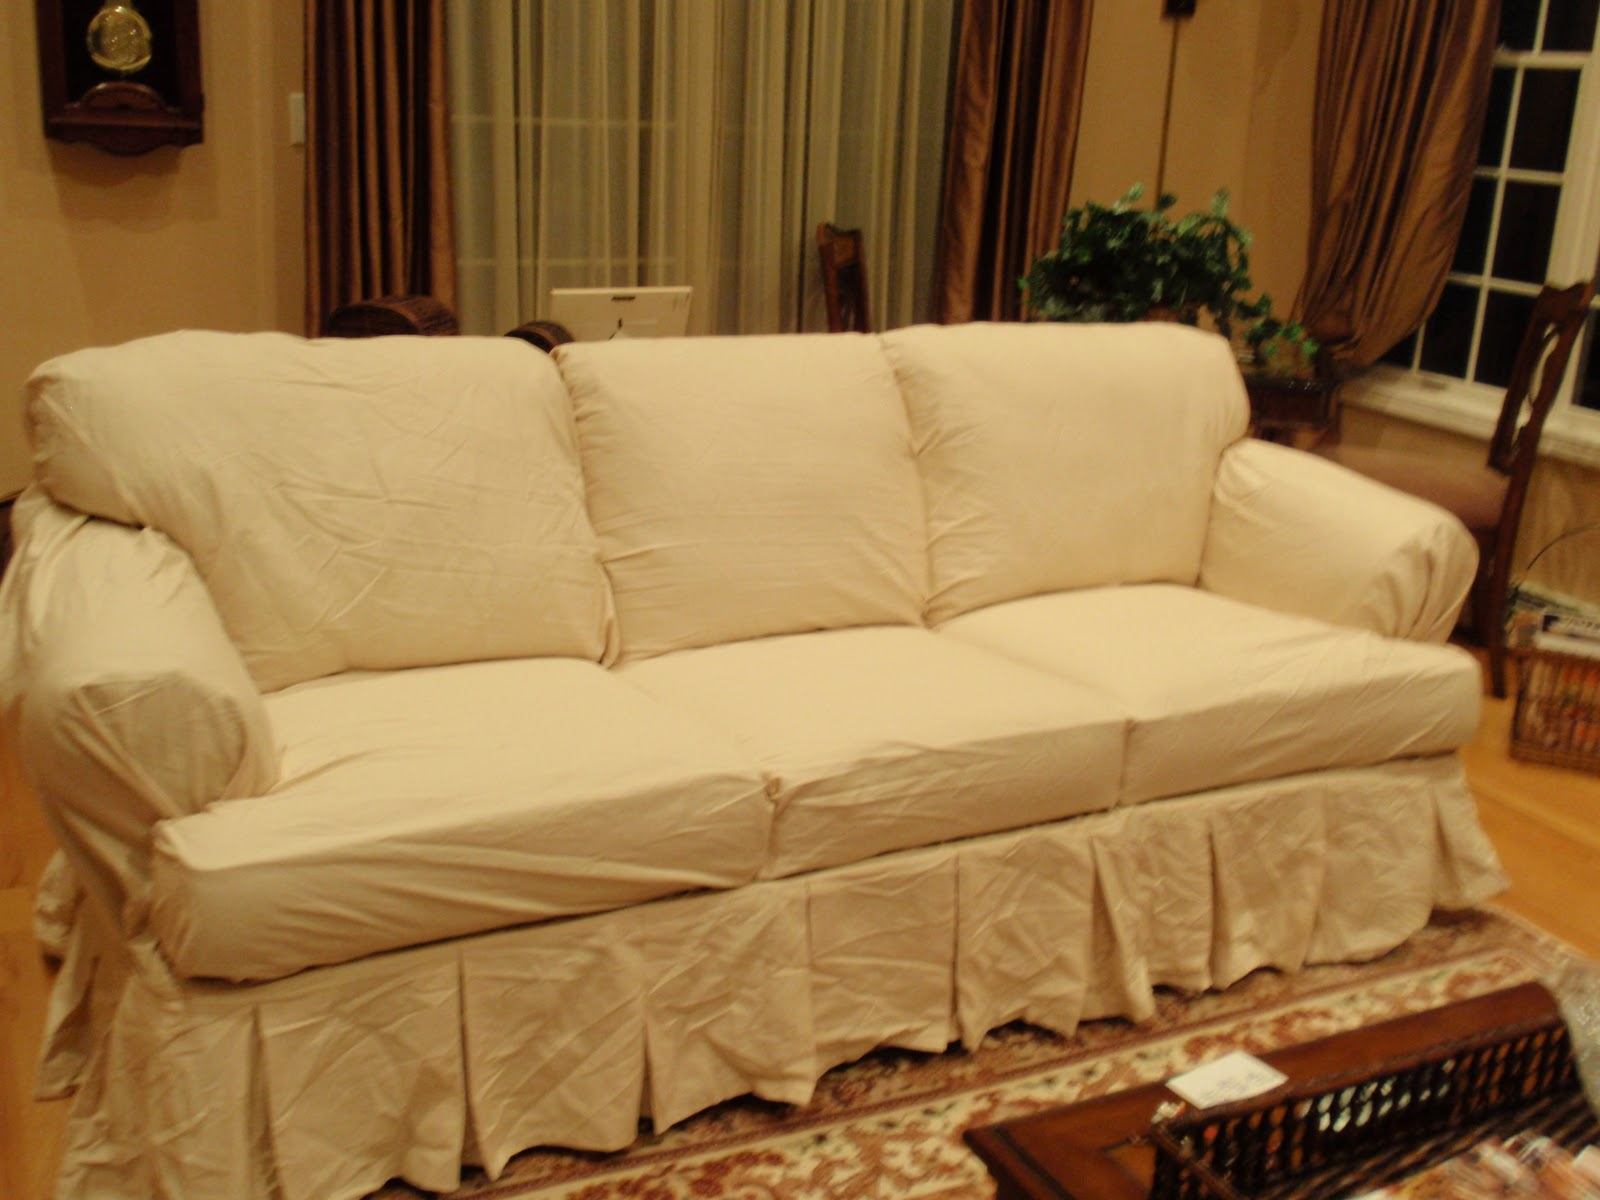 ugly sofa slipcovers reviews brokeasshome com best slipcovers for camelback sofa best sofa slipcovers uk